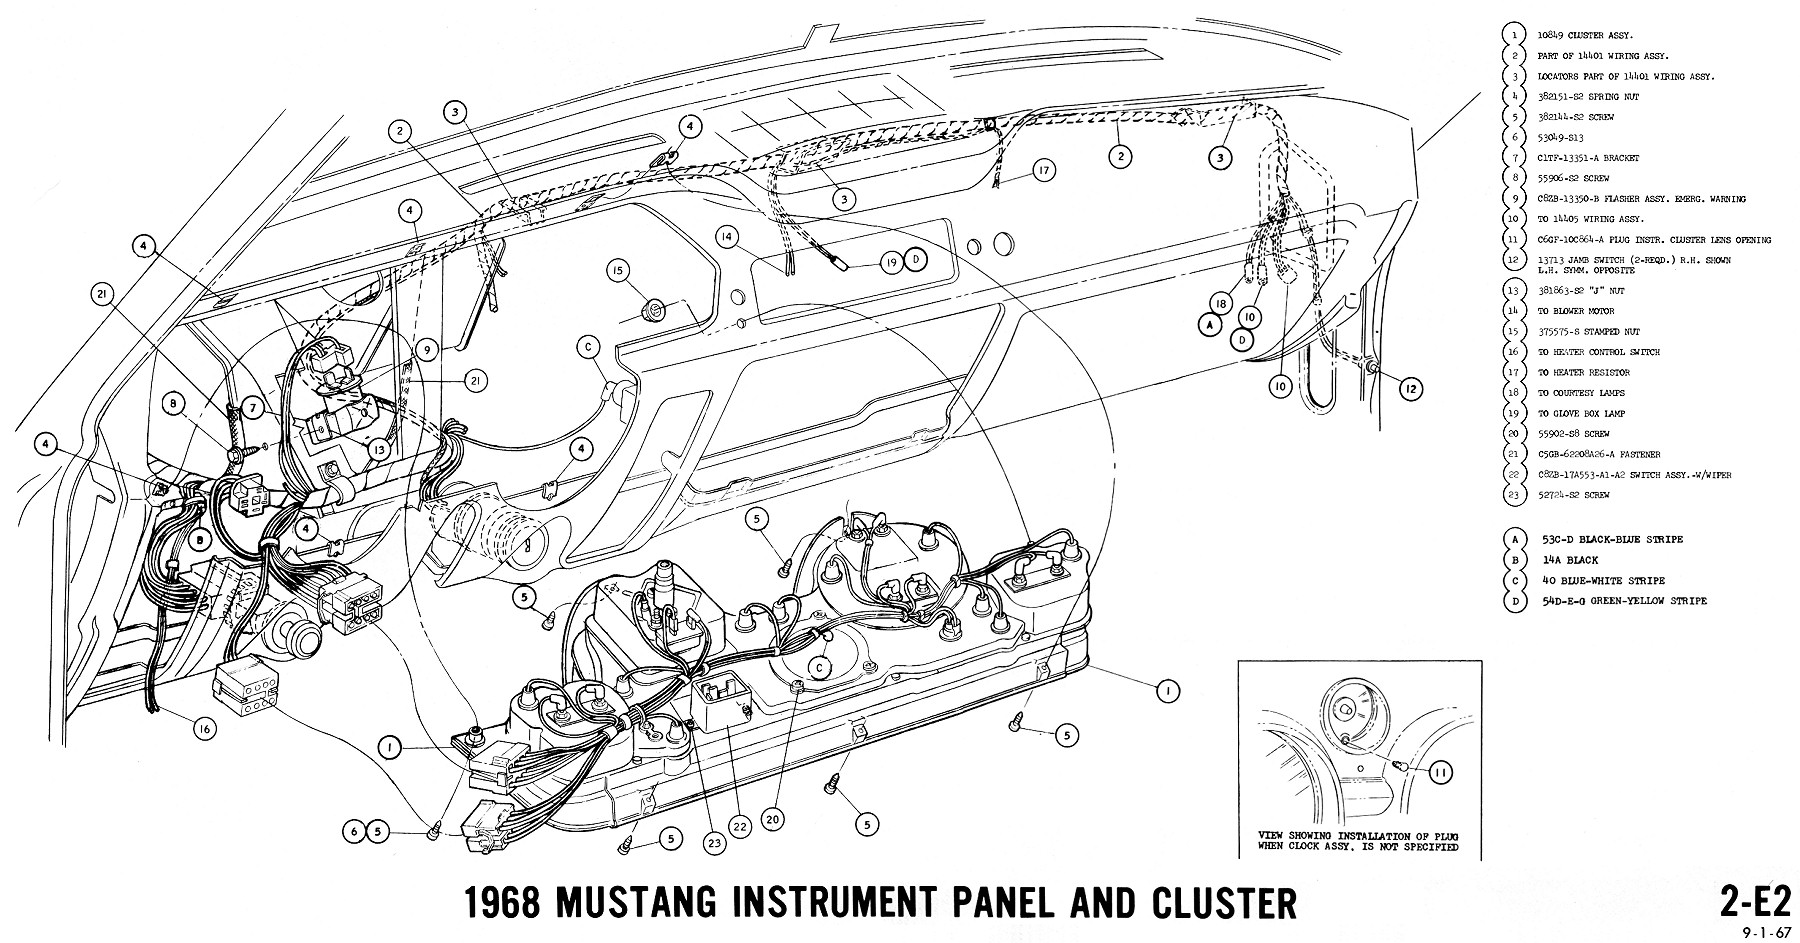 1968 mustang wiring diagram instruments 2 1968 mustang dash cluster wiring diagram wiring diagrams schematics